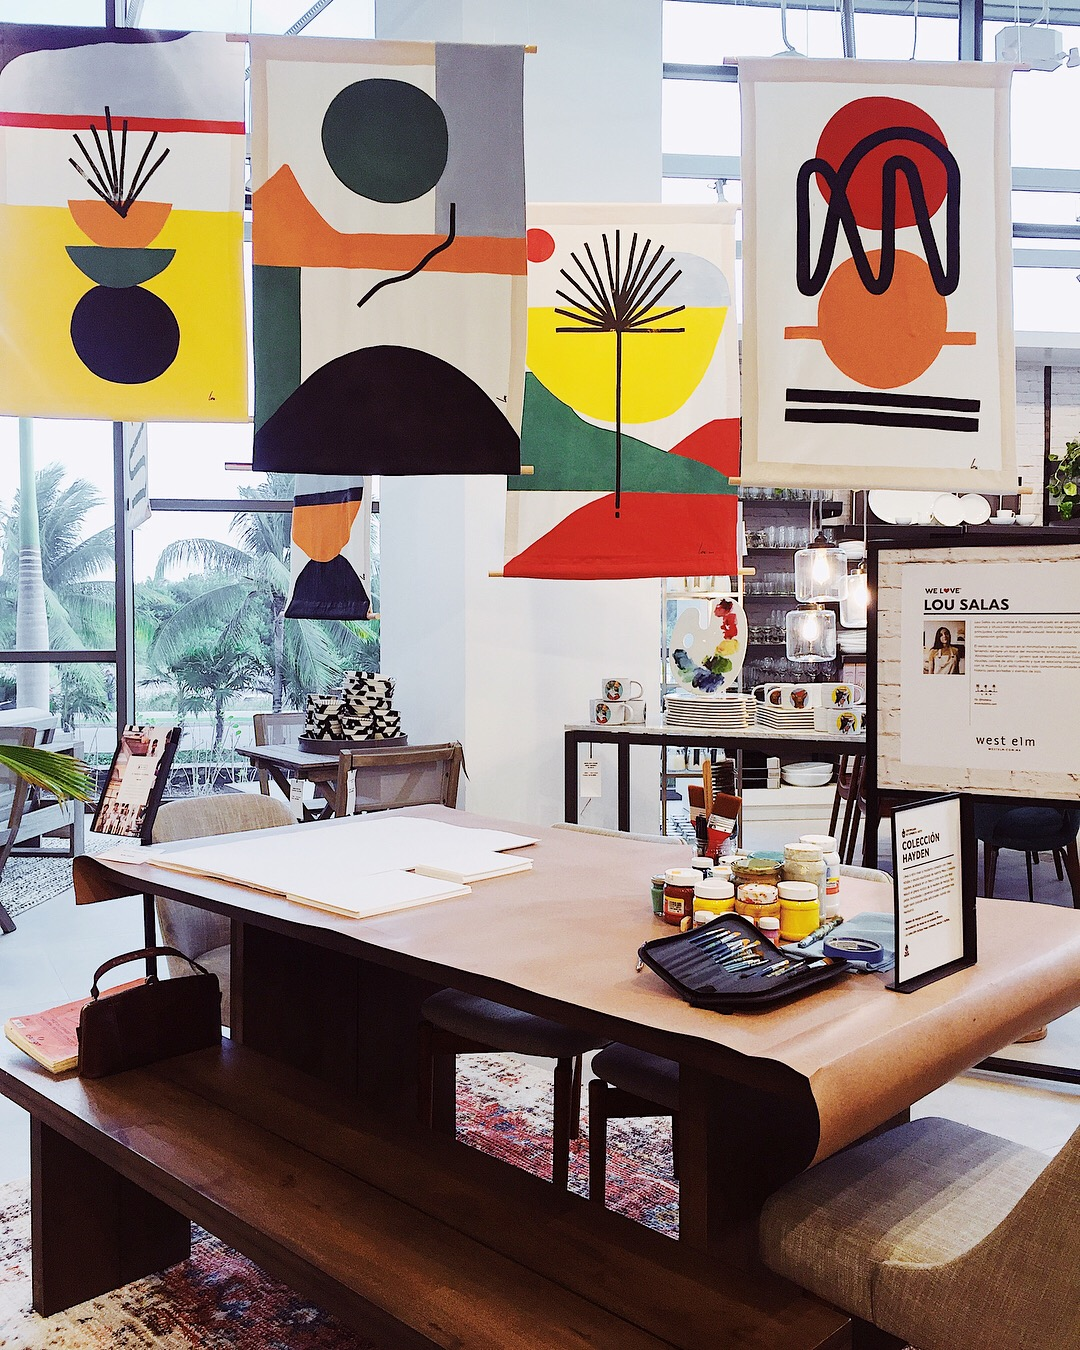 Art Installations for West Elm Mx